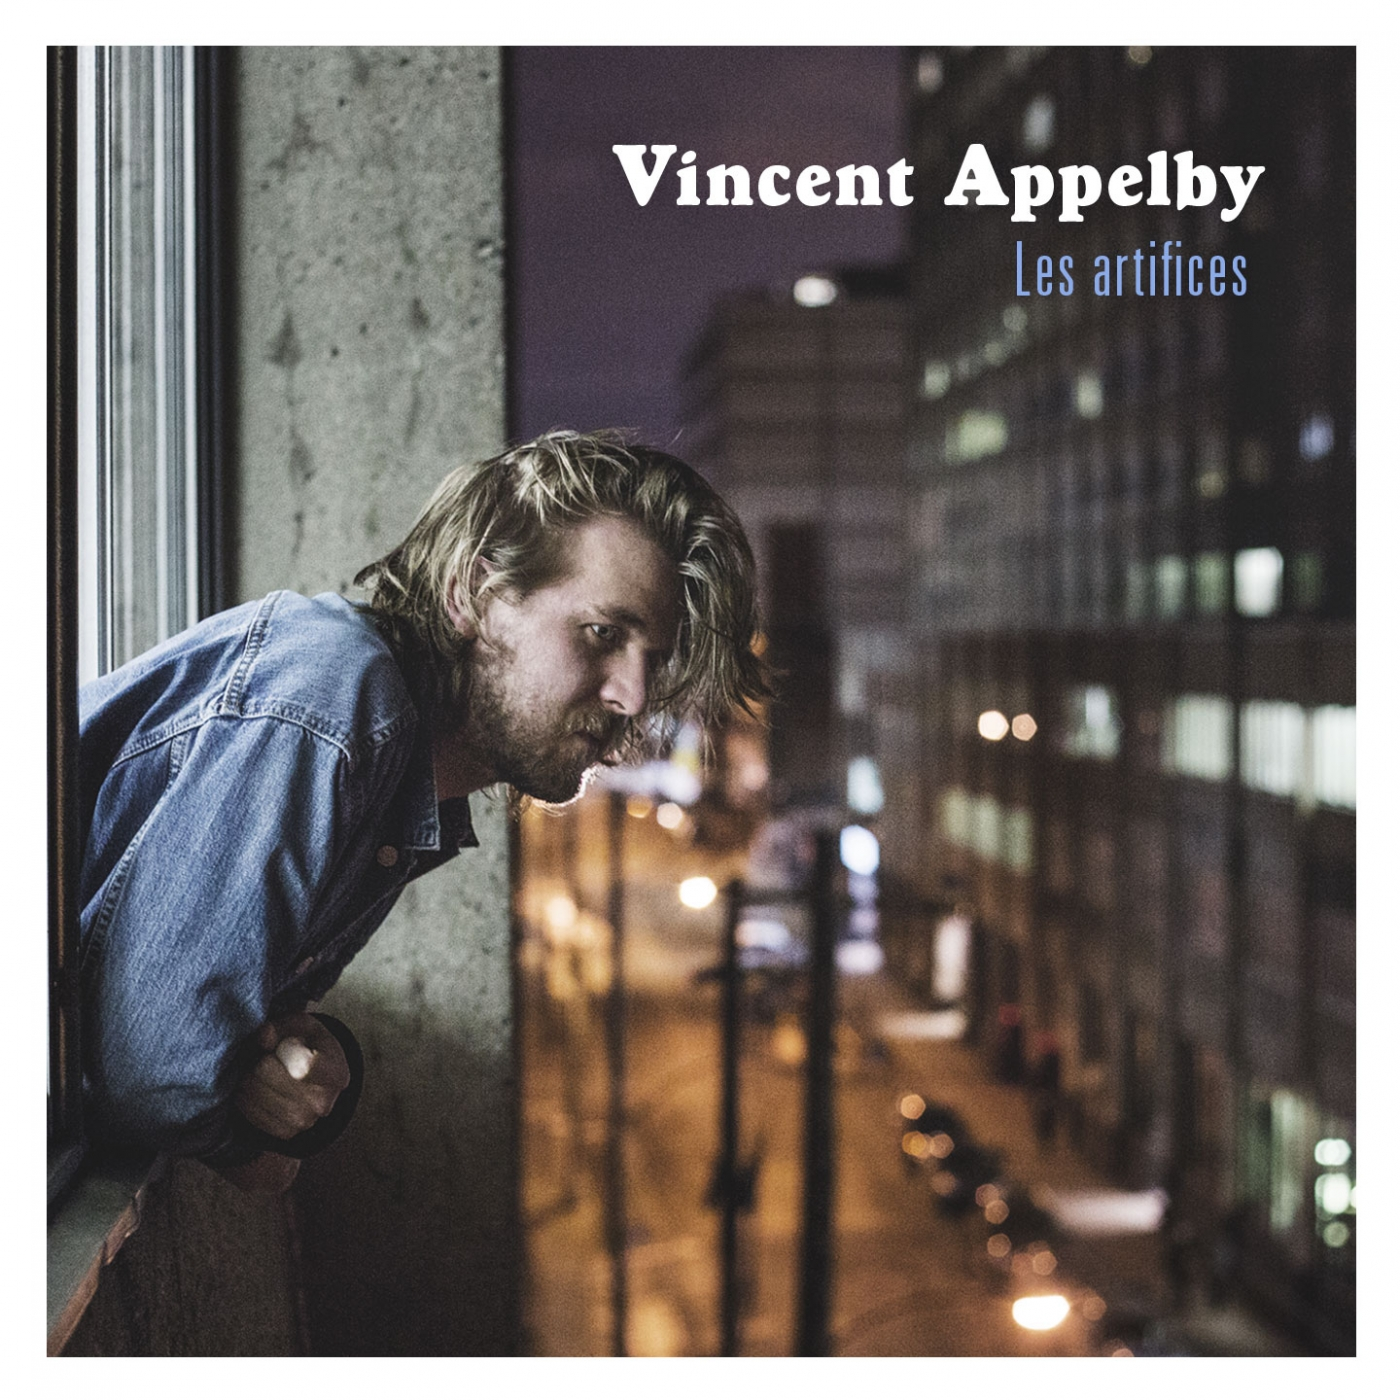 Vincent Appelby - Les artifices